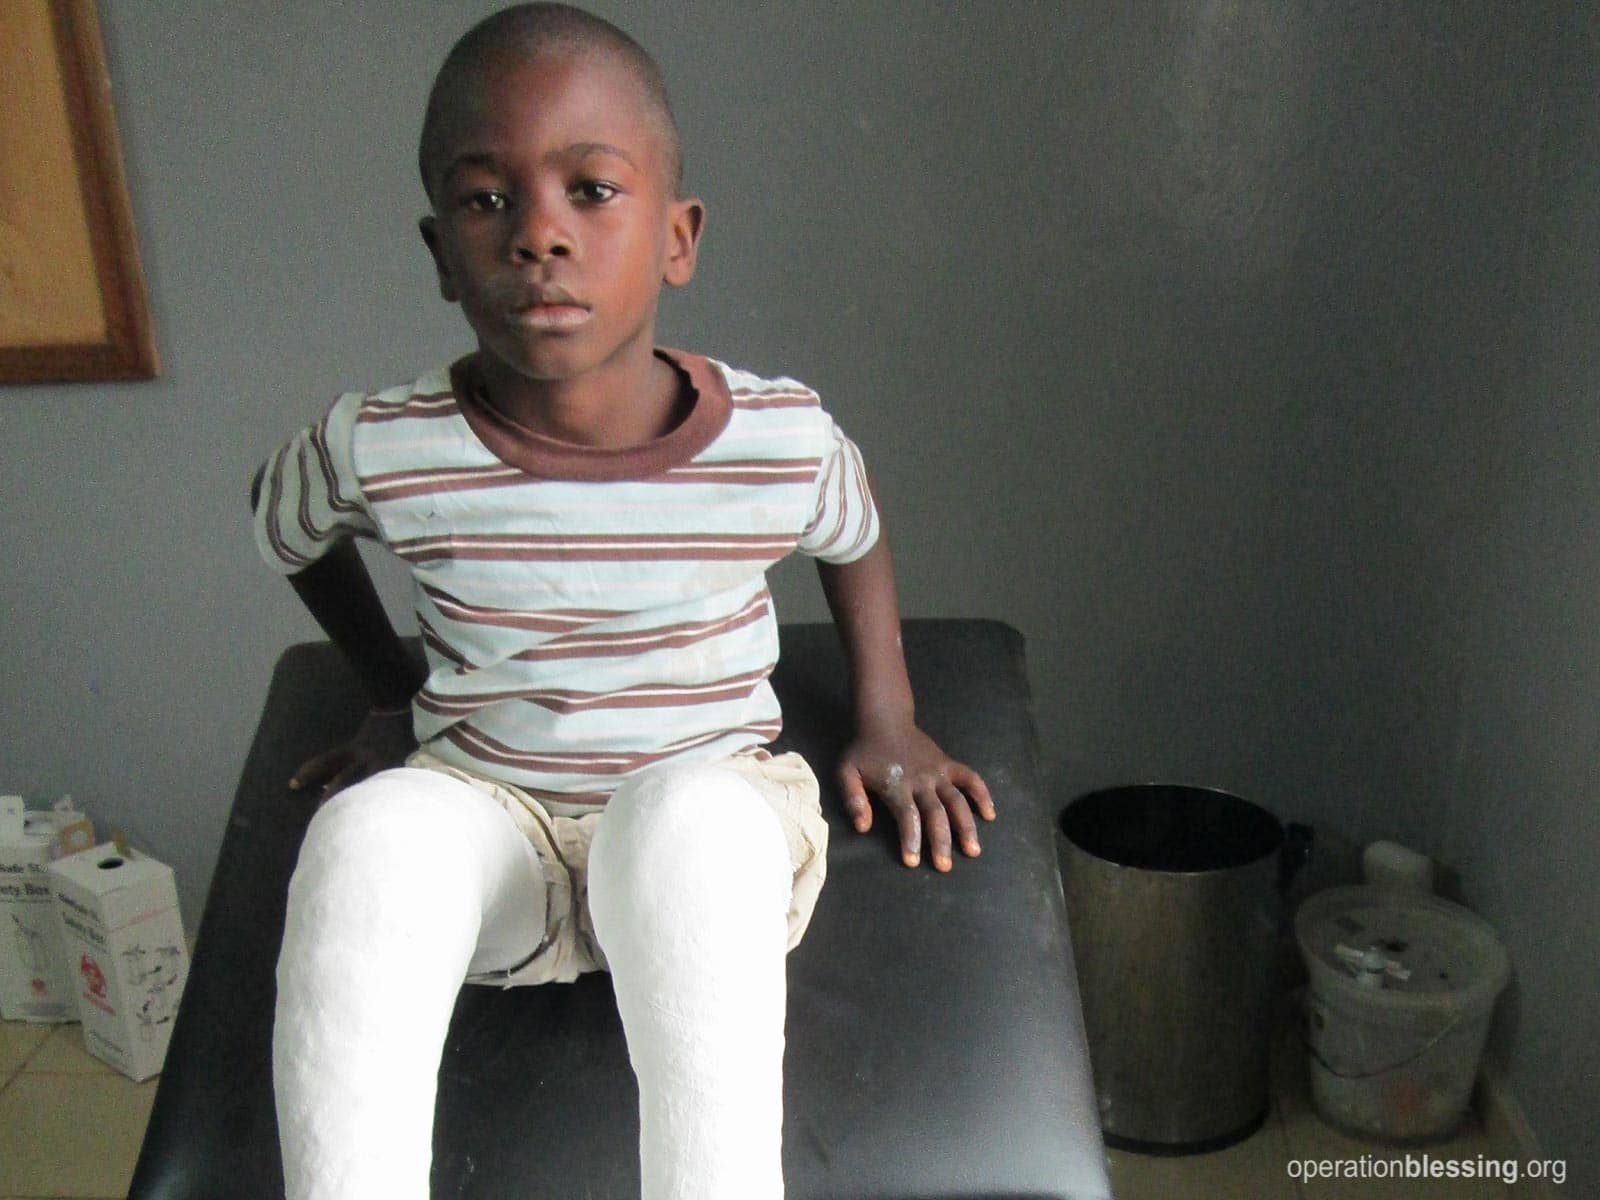 Mustapha with casts on his legs.